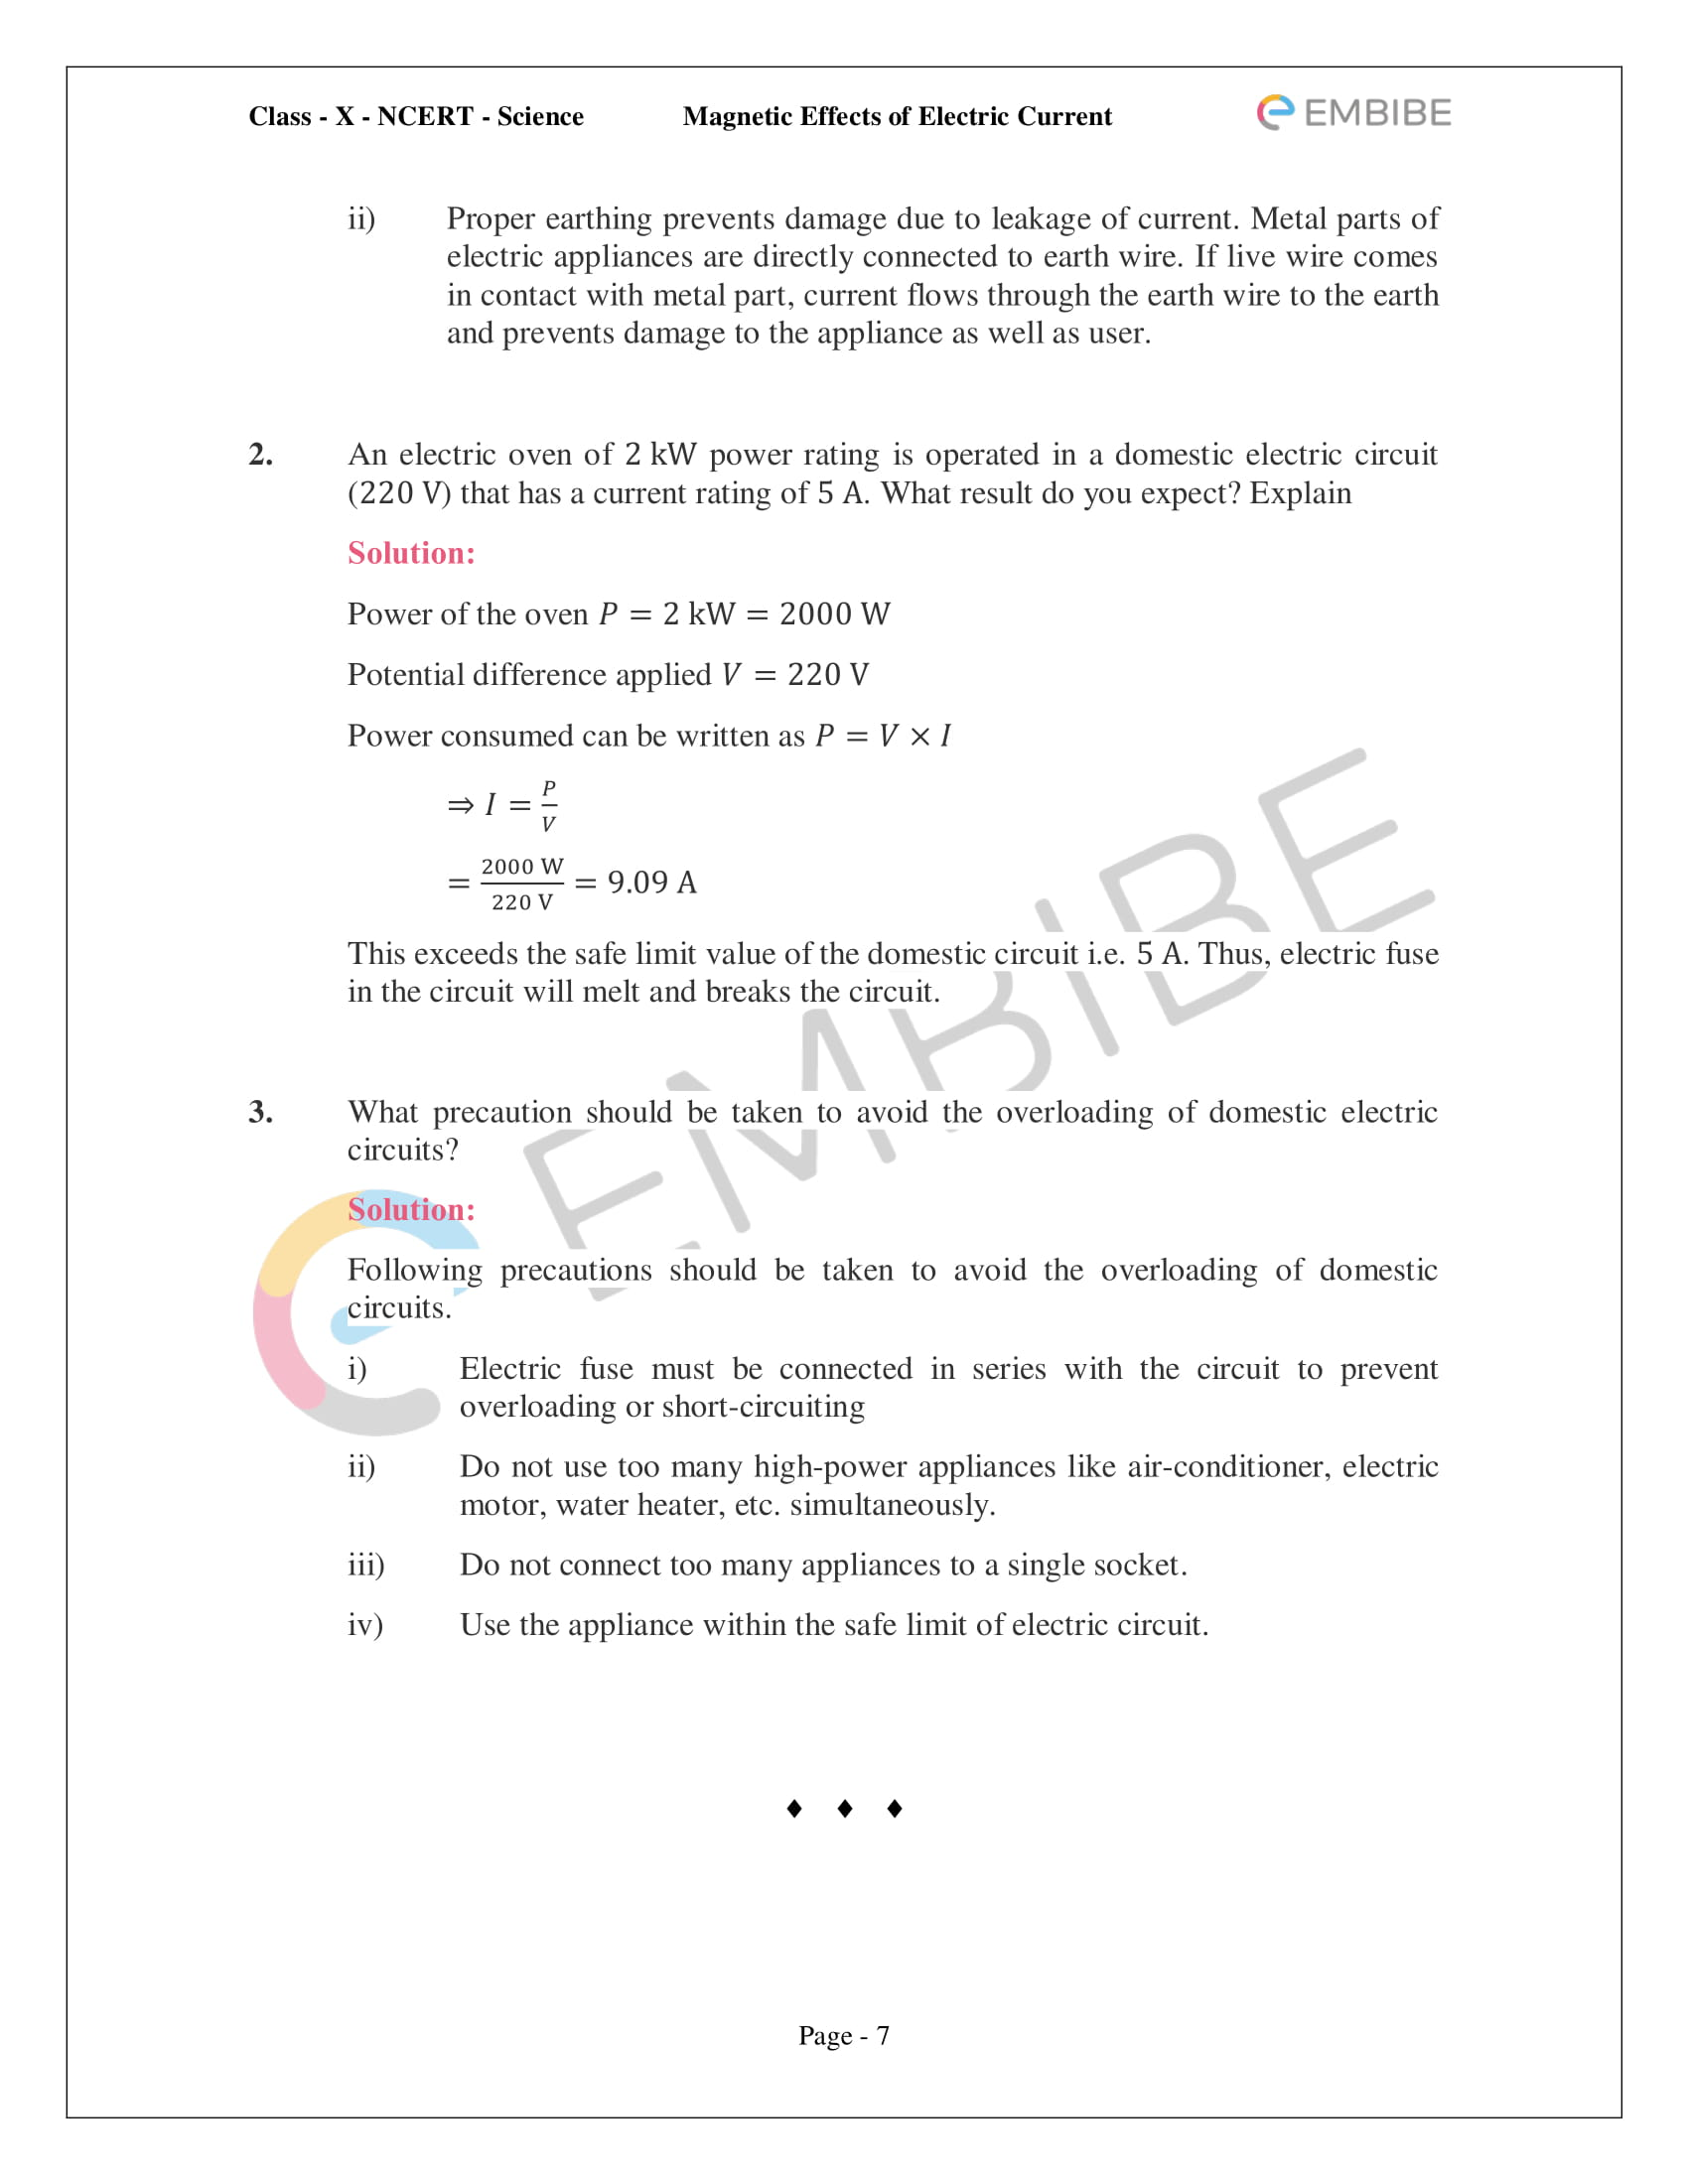 CBSE NCERT Solutions For Class 10 Science Chapter 13 - Magnetic Effects of Electric Current - 7